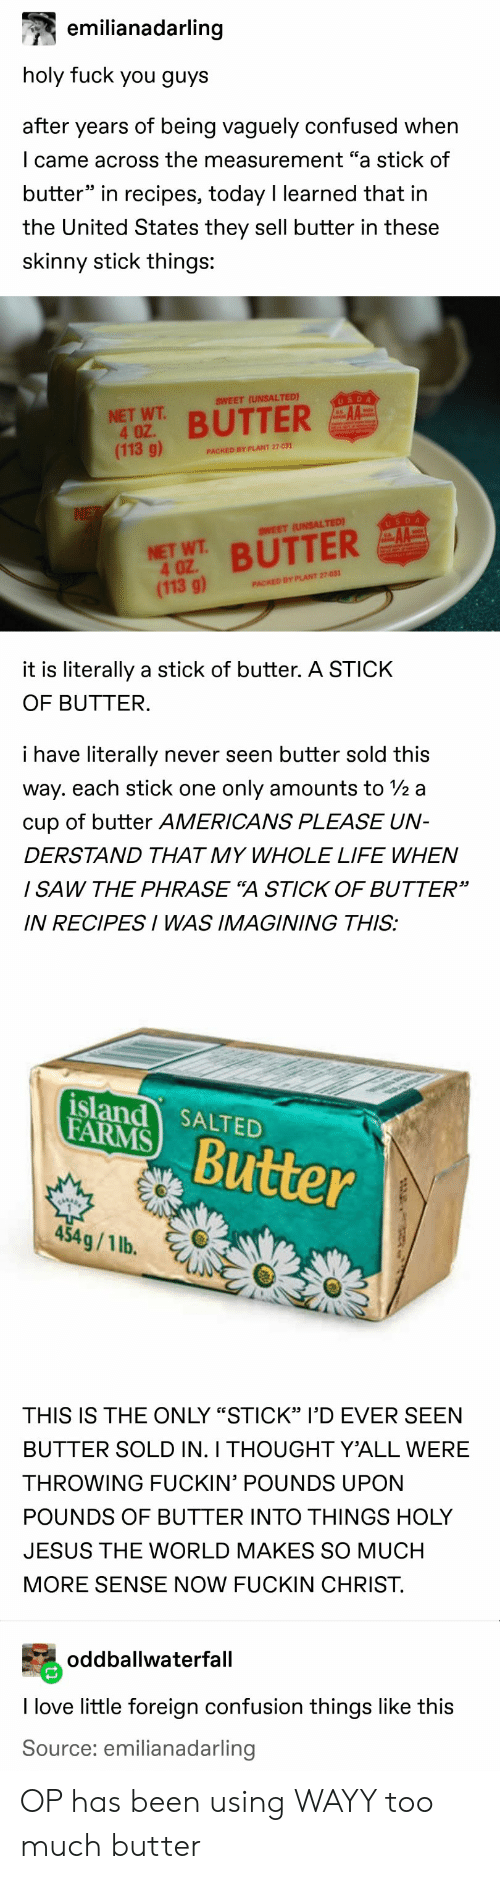 "measurement: emilianadarling  holy fuck you guys  after years of being vaguely confused when  I came across the measurement ""a stick of  butter"" in recipes, today I learned that in  the United States they sell butter in these  skinny stick things:  SWEET (UNSALTED)  USDA  NET WT  4 OZ.  (113 g)  BUTTER  PACKED BY PLANT 27-031  NE  USDA  SWEET (UNSALTED)  NET WT BUTTER  4 OZ  (113 g)  PACKED BY PLANT 27-031  it is literally a stick of butter. A STICK  OF BUTTER.  i have literally  never seen butter sold this  way. each stick one  only amounts to /2 a  cup of butter AMERICANS PLEASE UN-  DERSTAND THAT MY WHOLE LIFE WHEN  / SAW THE PHRASE ""A STICK OF BUTTER""  IN RECIPESI WAS IMAGINING THIS:  island SALTED  FARMS  Butter  454g/1 lb.  THIS IS THE ONLY ""STICK"" l'D EVER SEEN  BUTTER SOLD IN. I THOUGHT Y'ALL WERE  THROWING FUCKIN' POUNDS UPON  POUNDS OF BUTTER INTO THINGS HOLY  JESUS THE WORLD MAKES SO MUCH  MORE SENSE NOW FUCKIN CHRIST.  oddballwaterfall  I love little foreign confusion things like this  Source: emilianadarling OP has been using WAYY too much butter"